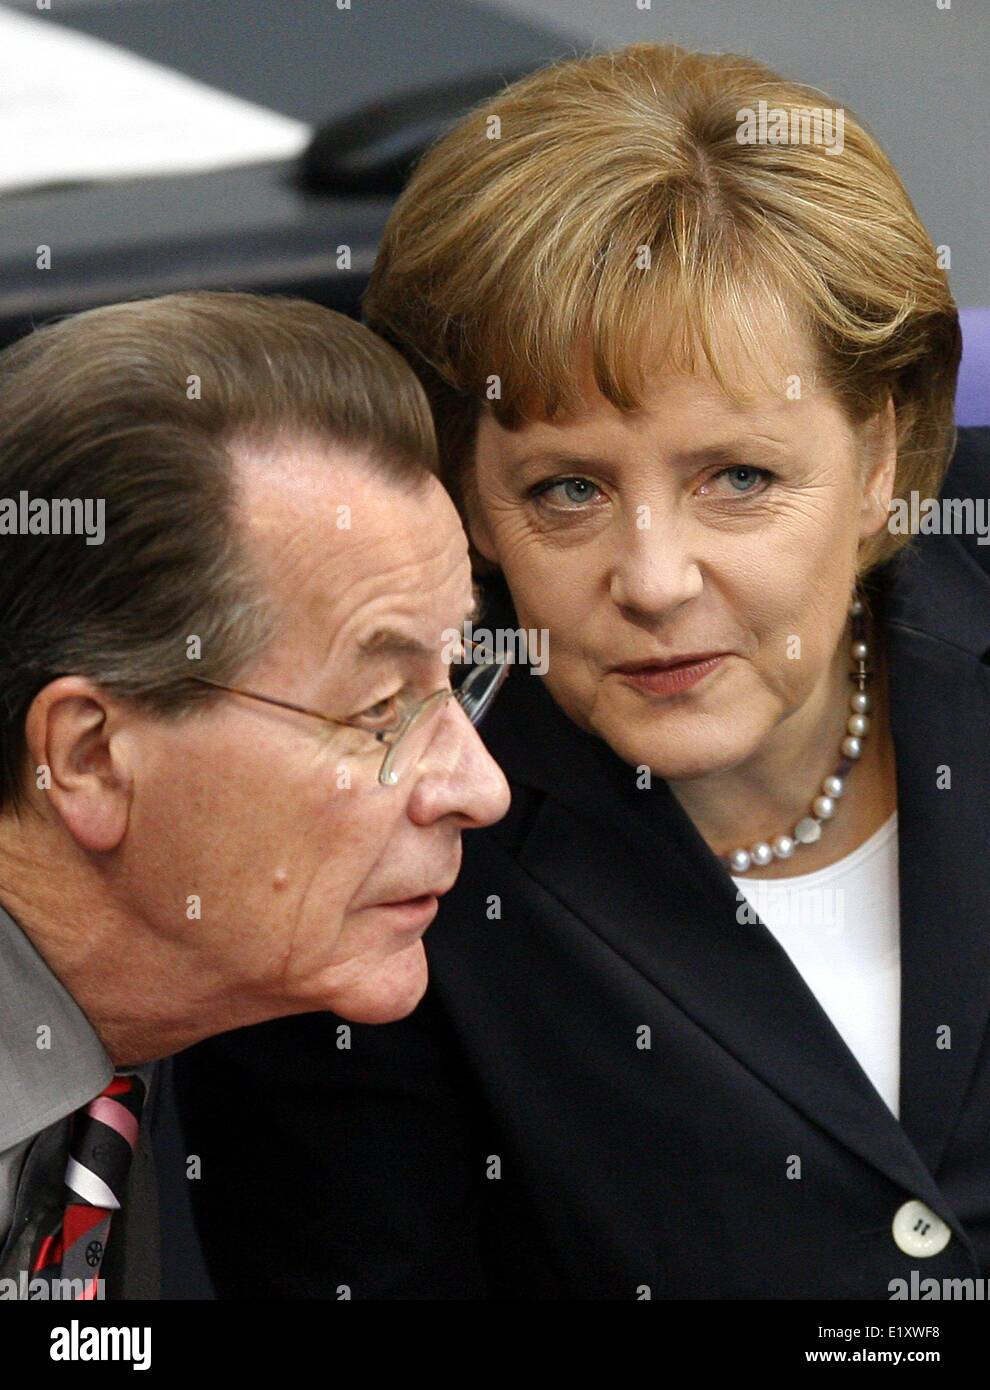 Chancellor Angela Merkel (CDU) and German minister of Labour Franz Müntefering (SPD) participate in the debate - Stock Image